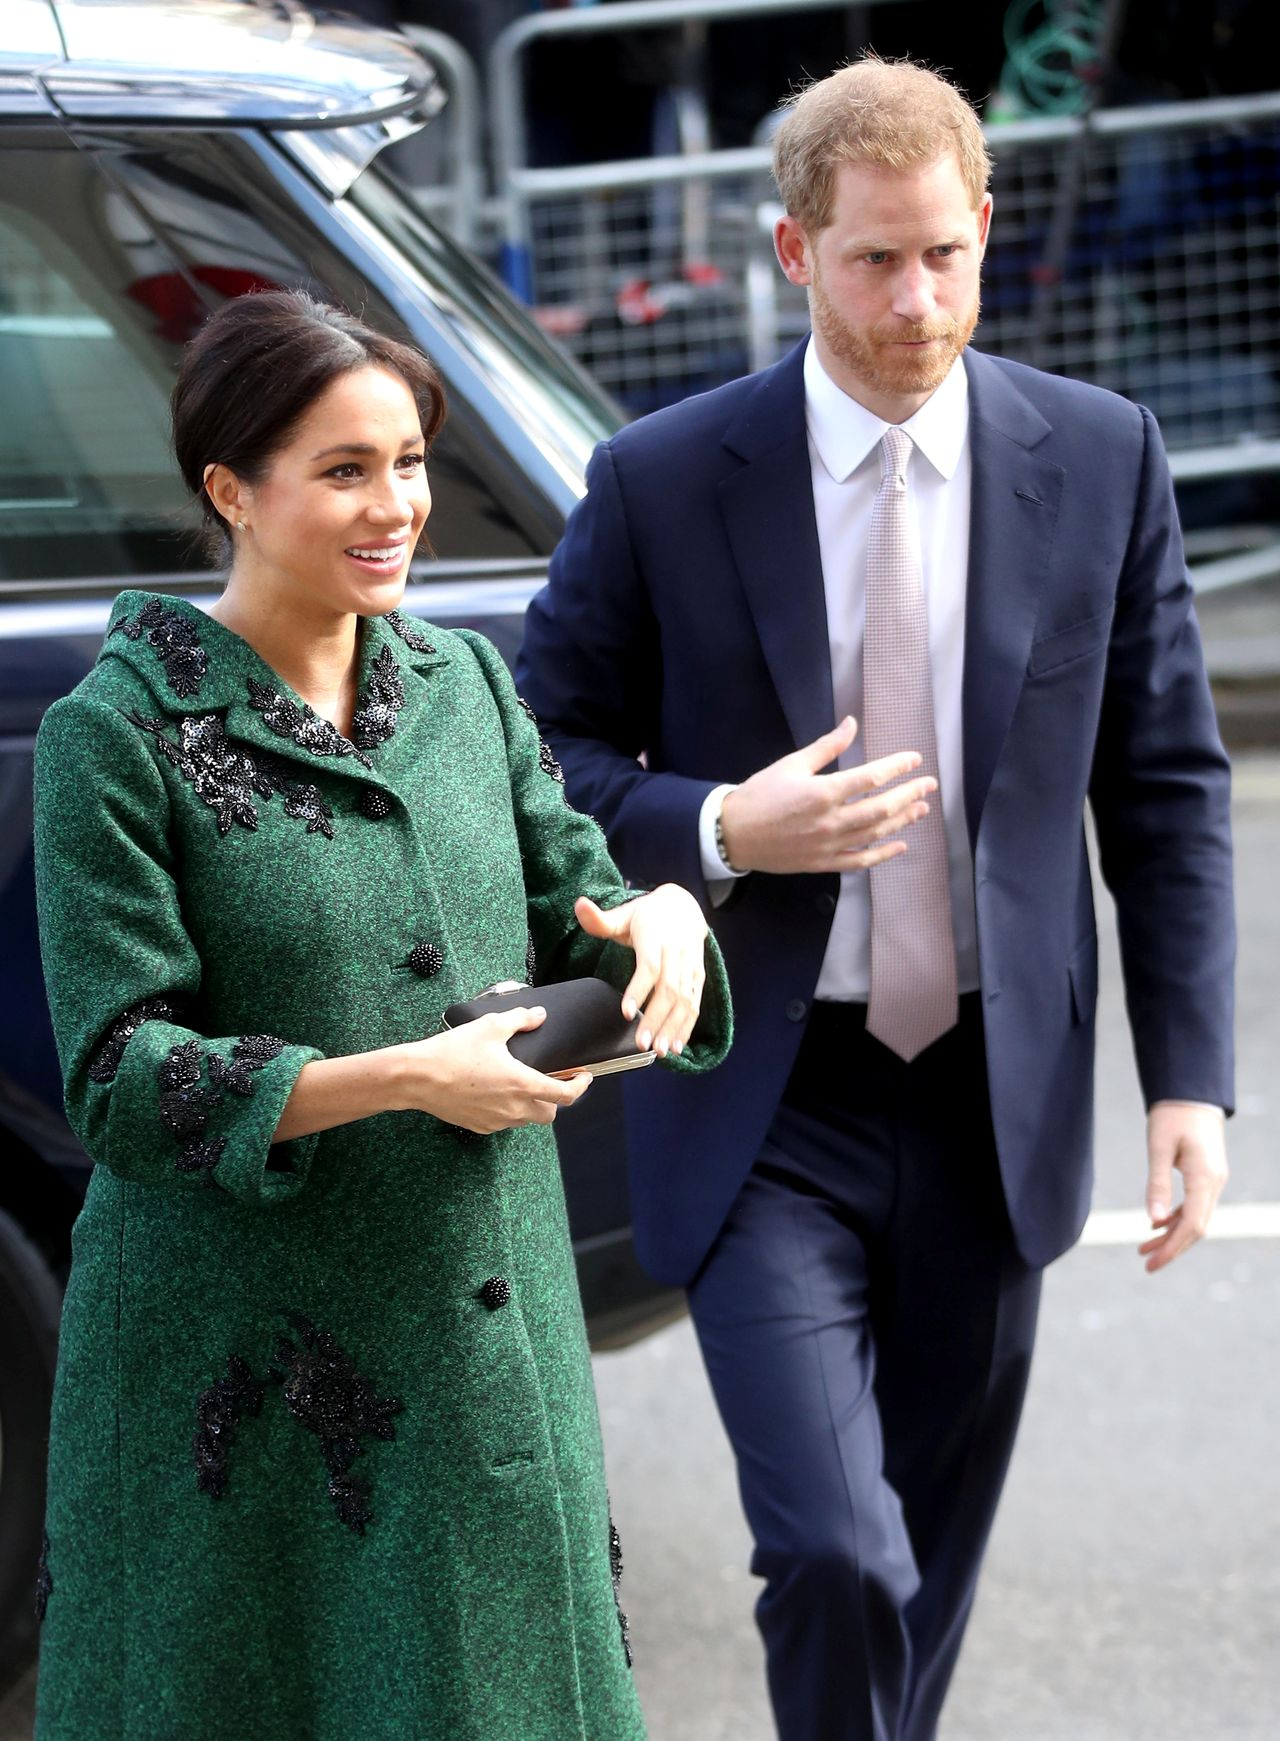 Britain's Prince Harry and Meghan, Duchess of Sussex attend a Commonwealth Day youth event in London